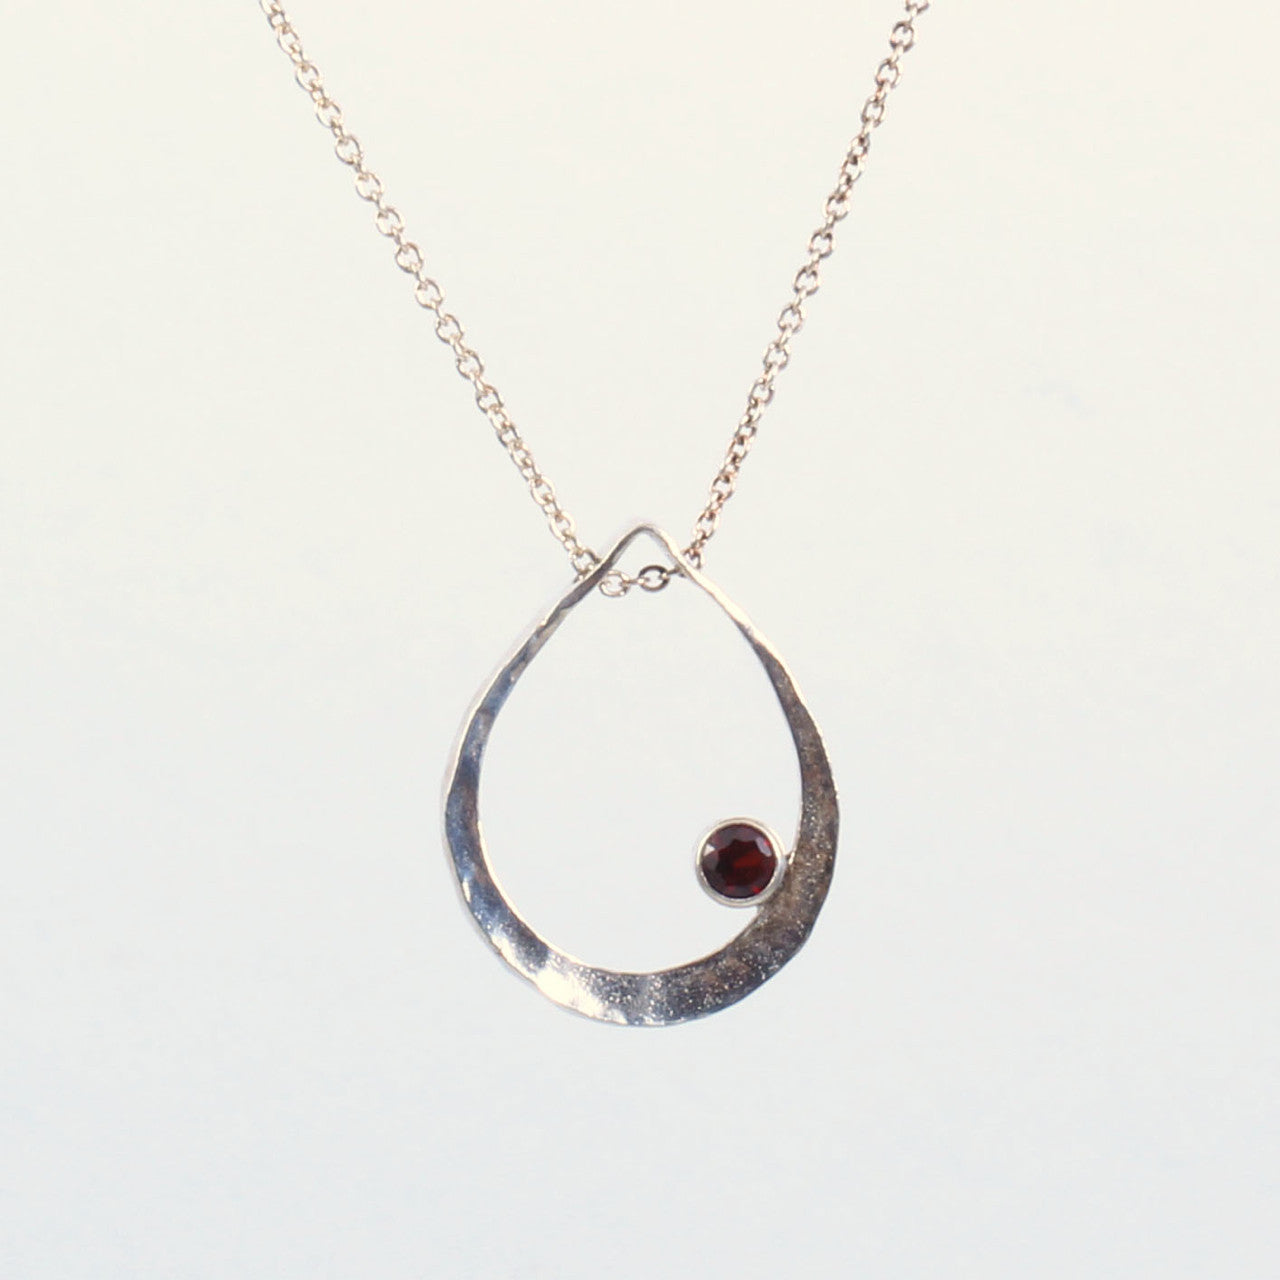 Small Raindrop Pendant with Stone